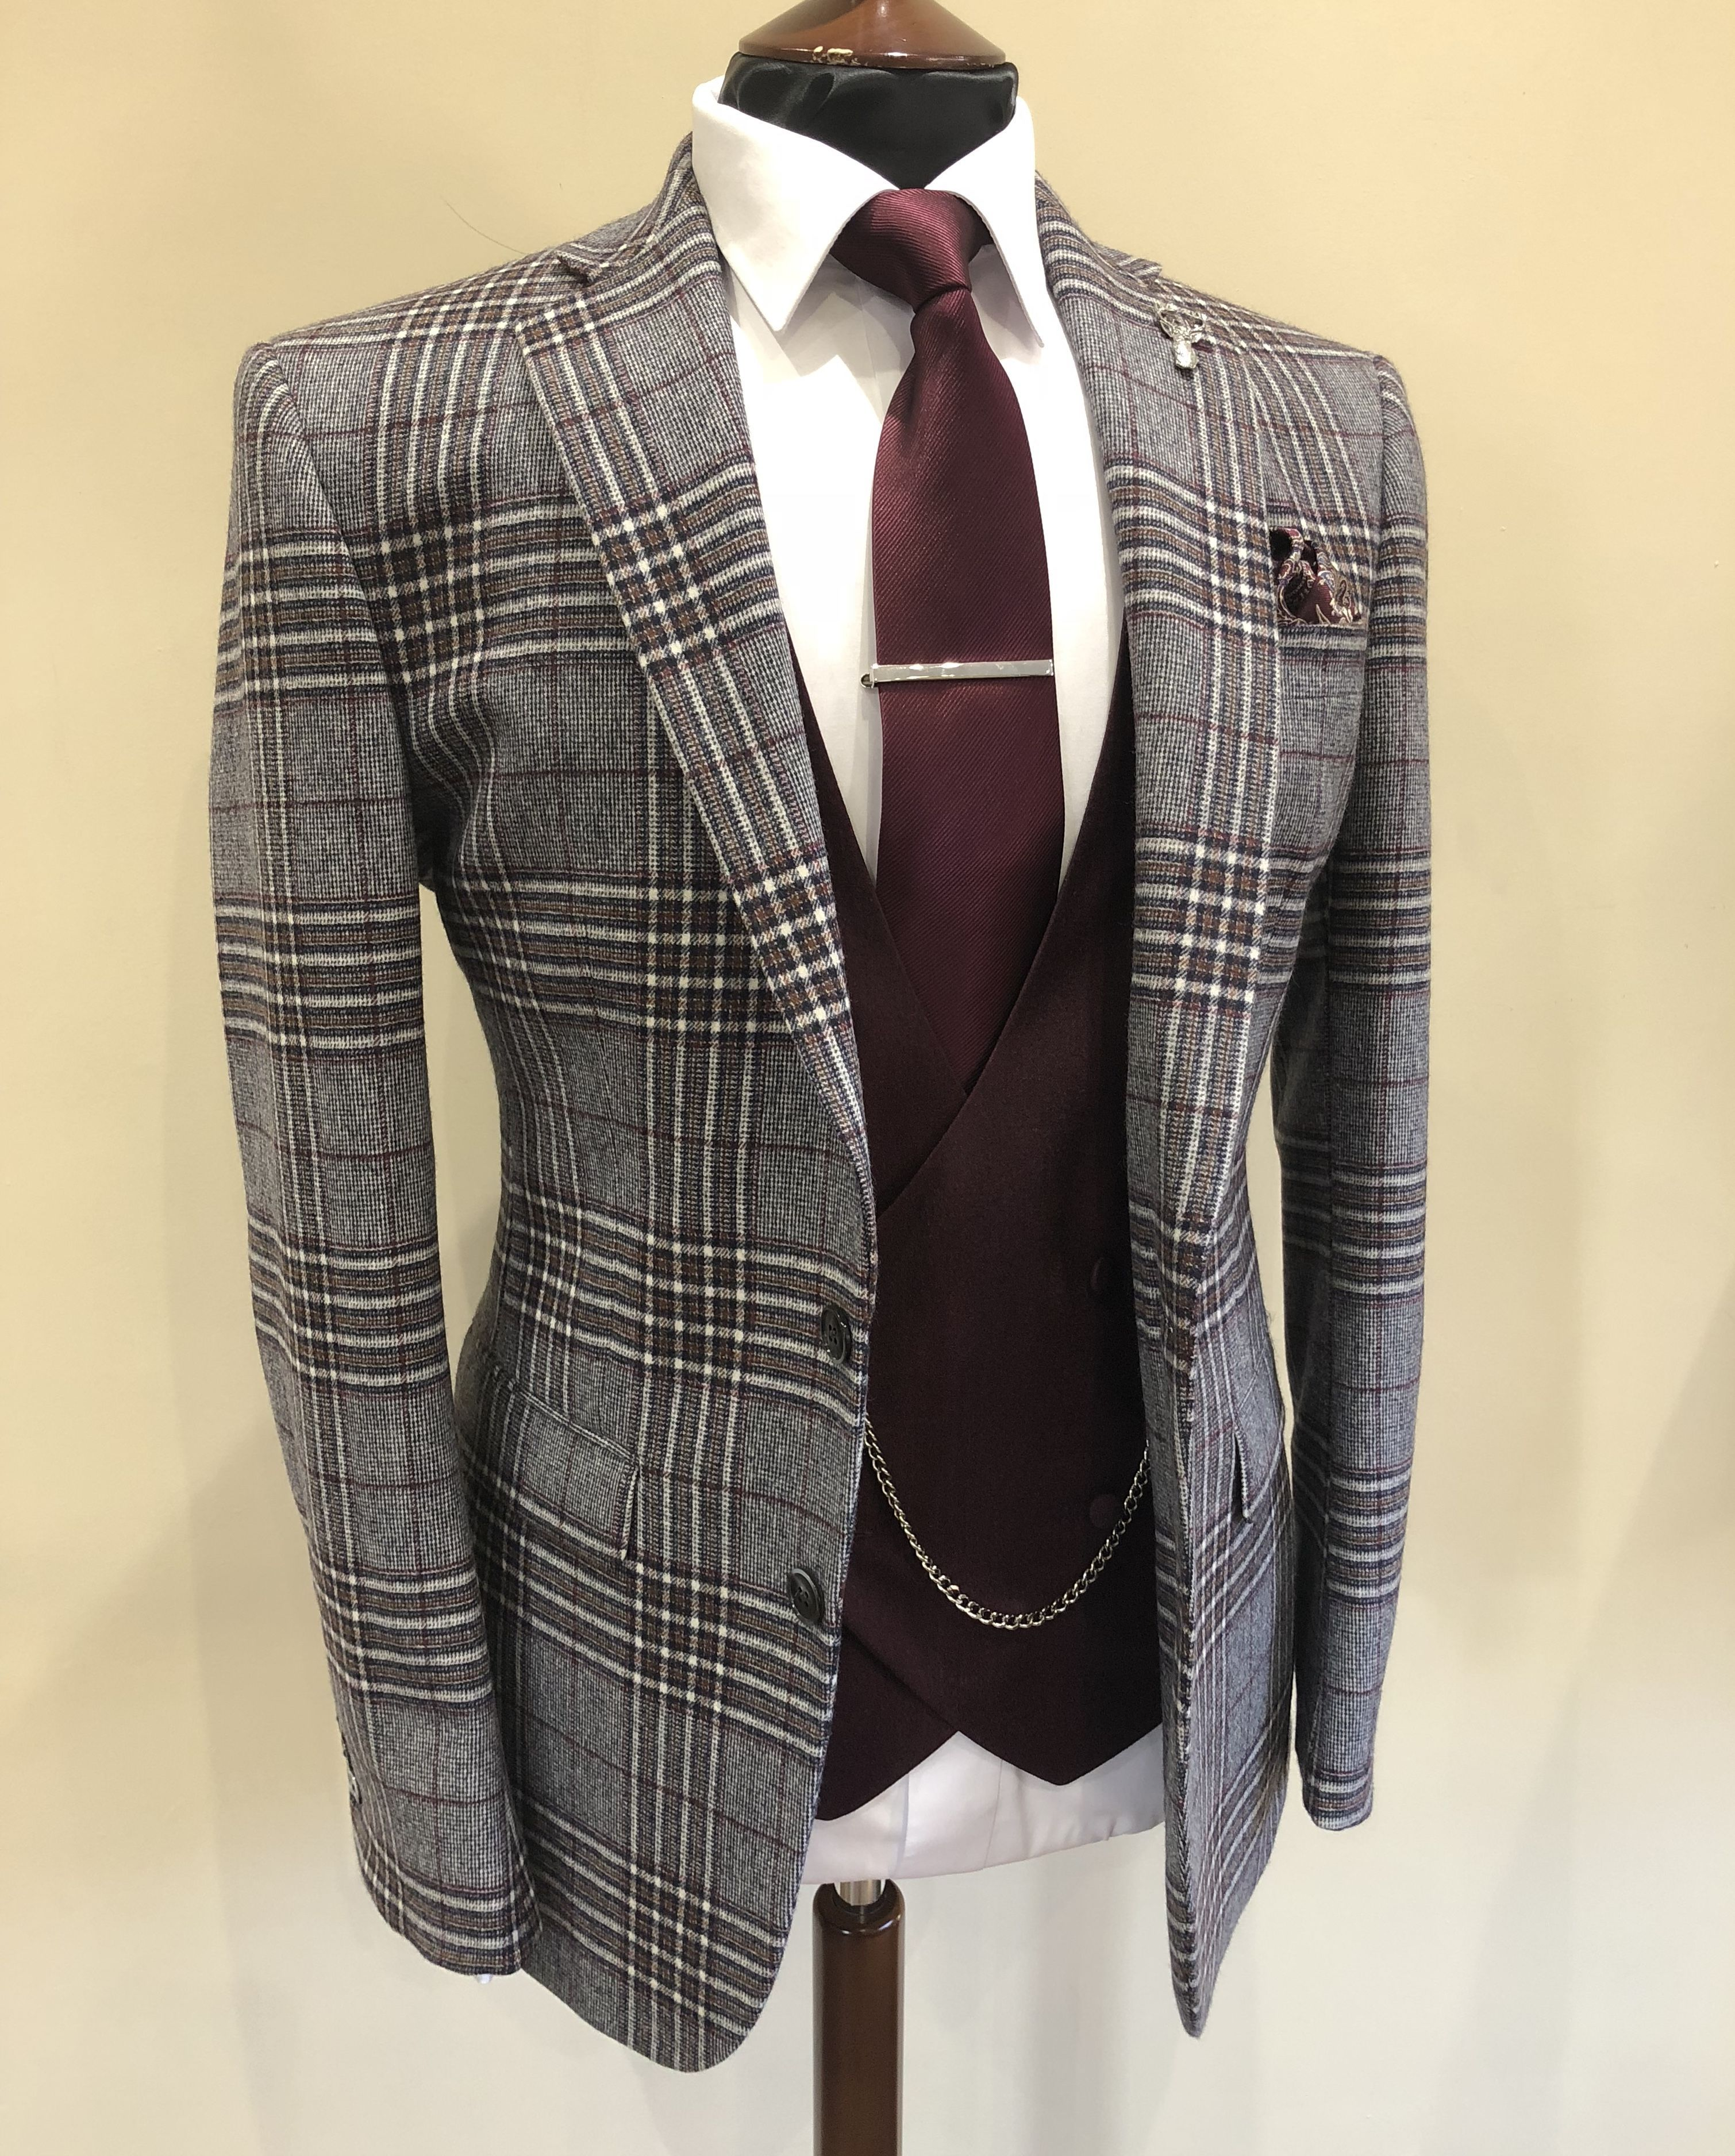 Burgundy Suit. For more info, call us on 01625 536 545